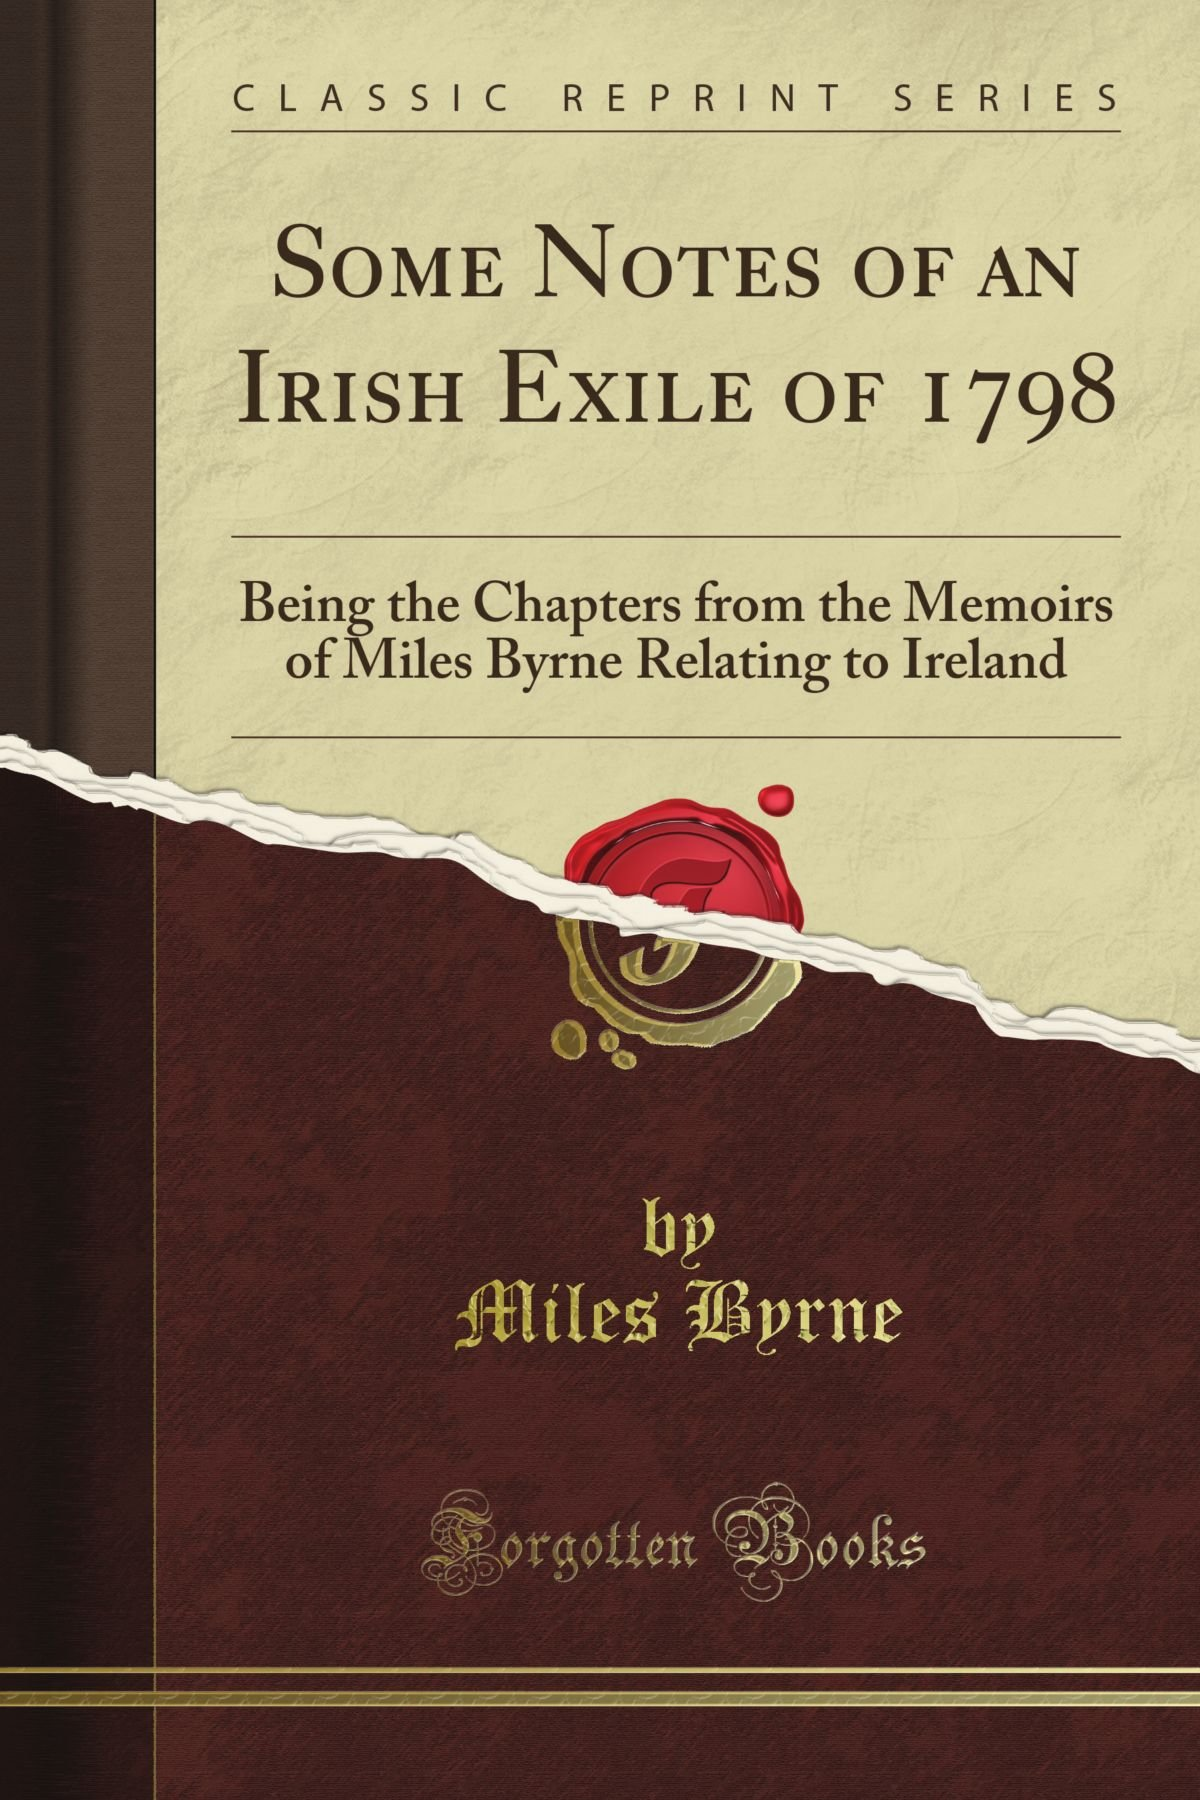 Download Some Notes of an Irish Exile of 1798: Being the Chapters from the Memoirs of Miles Byrne Relating to Ireland (Classic Reprint) ebook